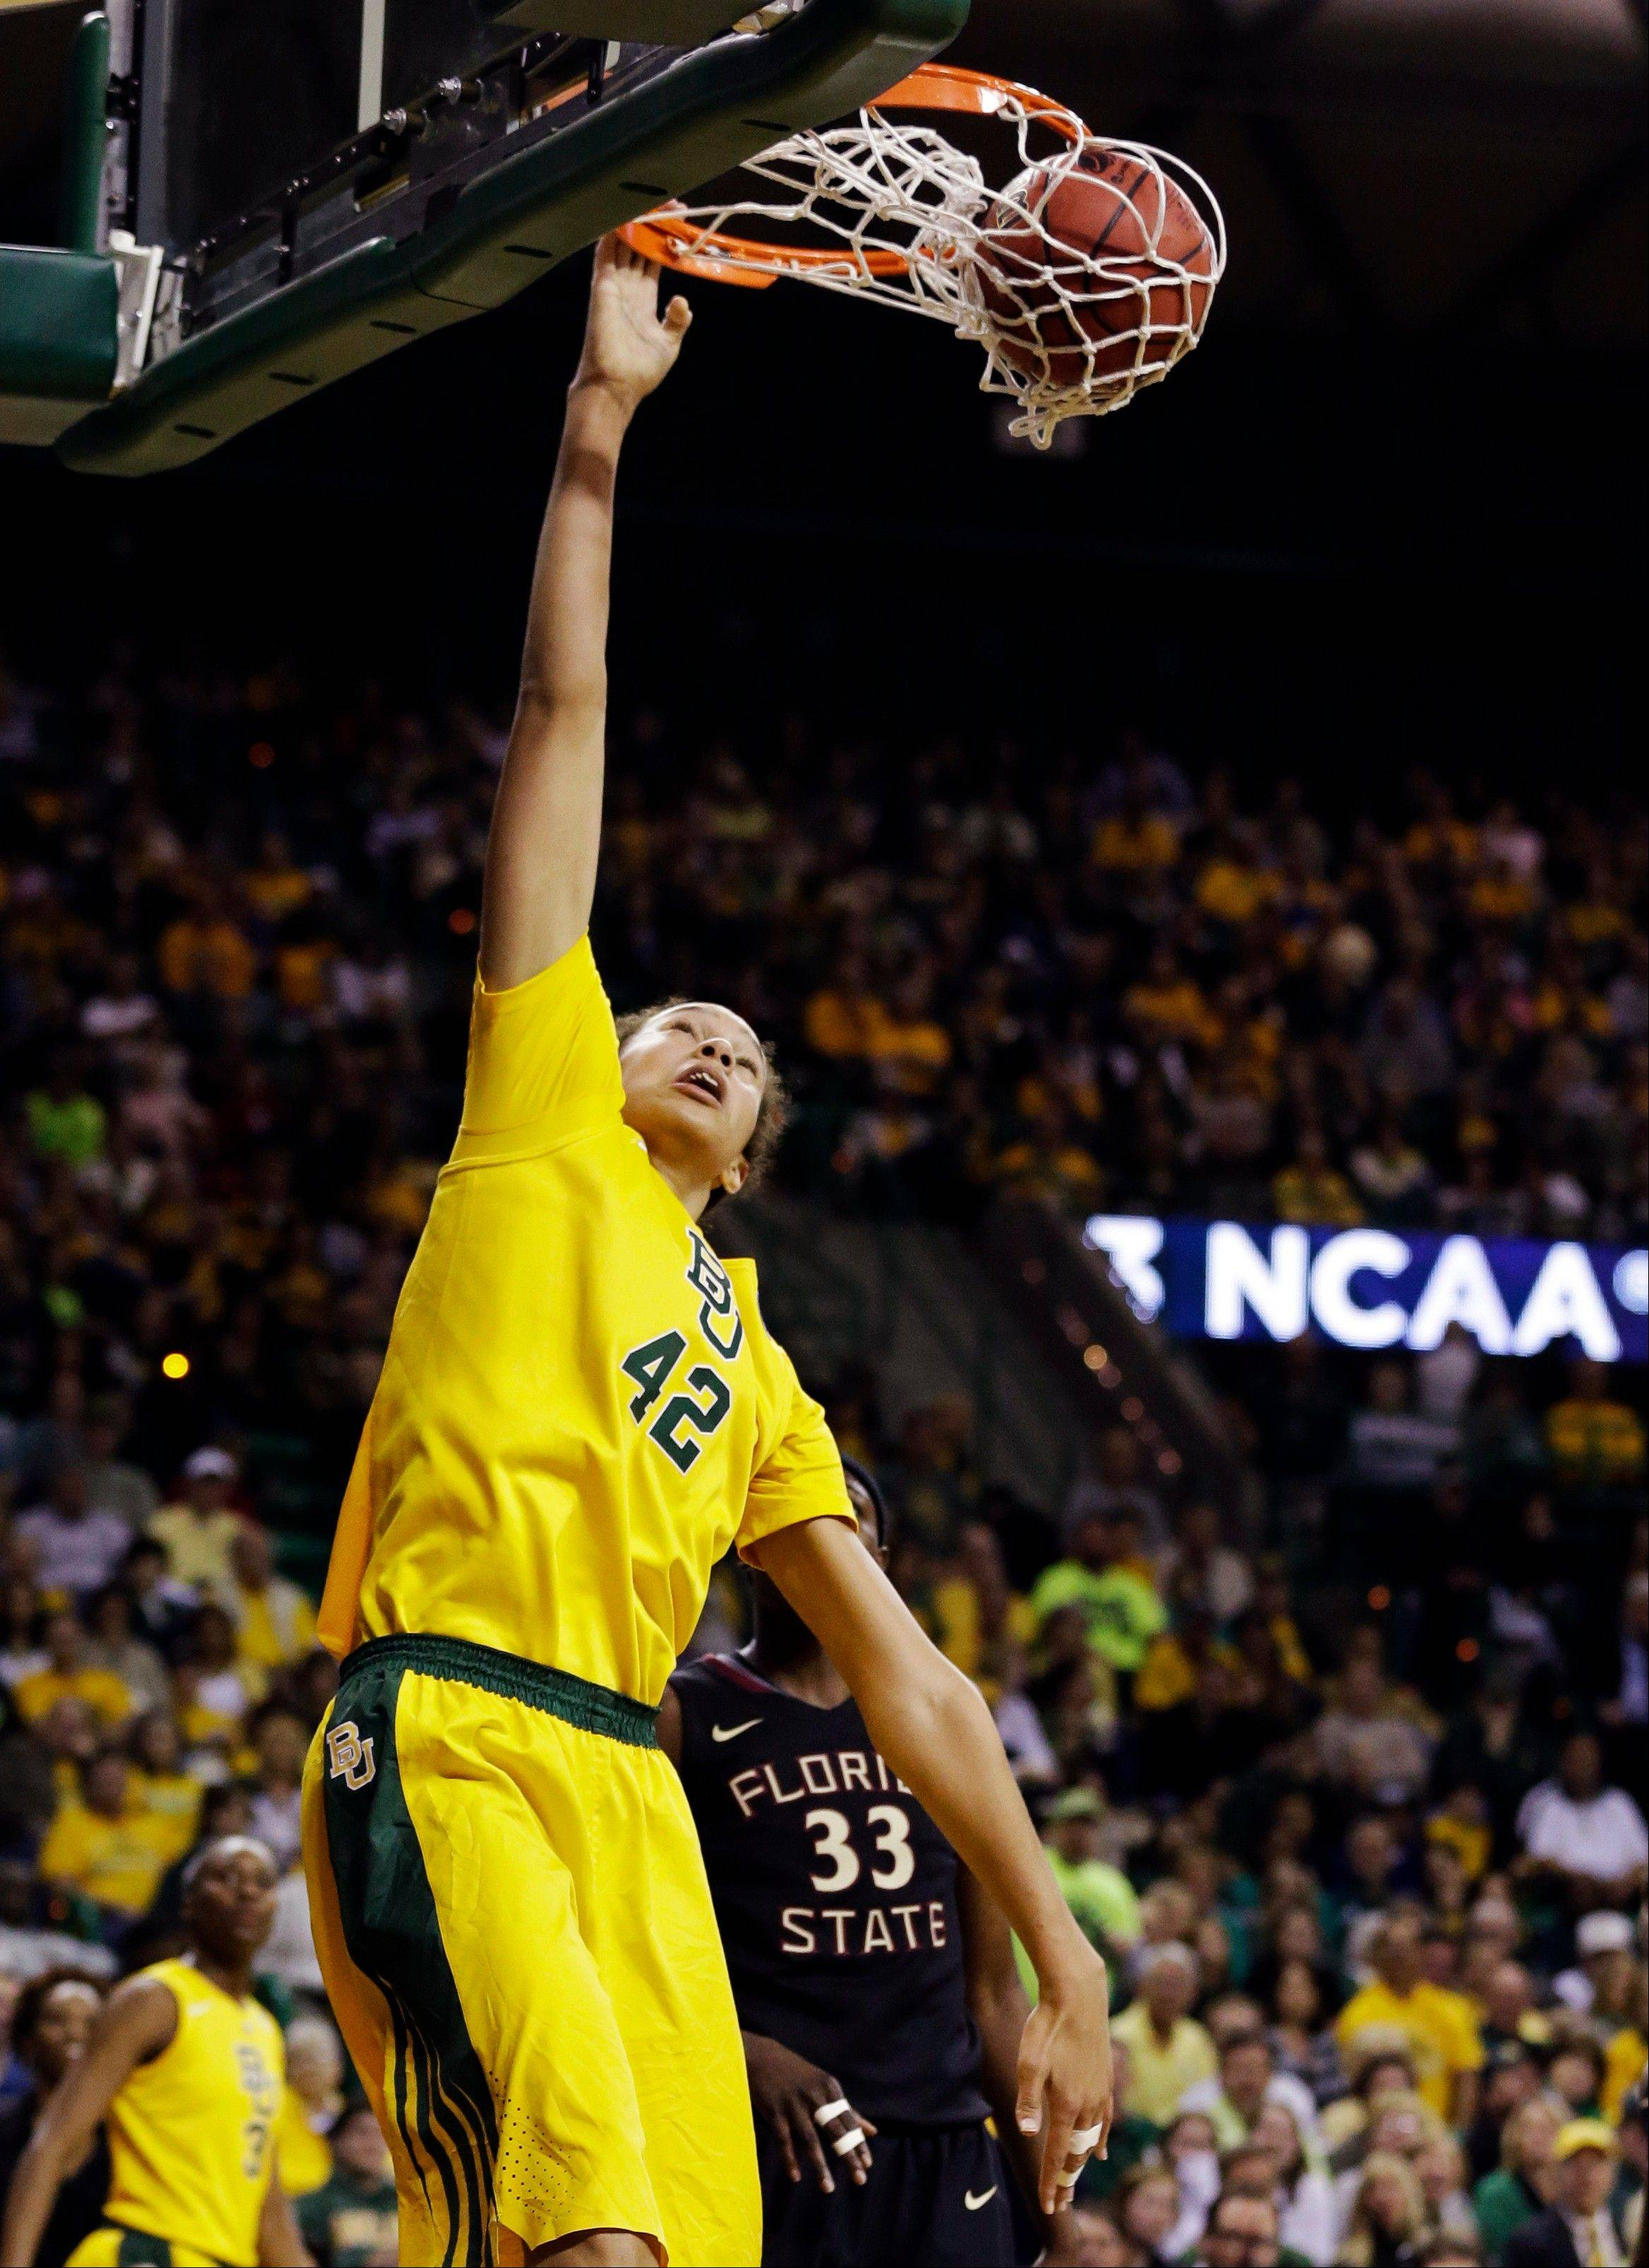 Against Florida State on Tuesday, Griner threw down three dunks in the post that any guy her age would be proud of.